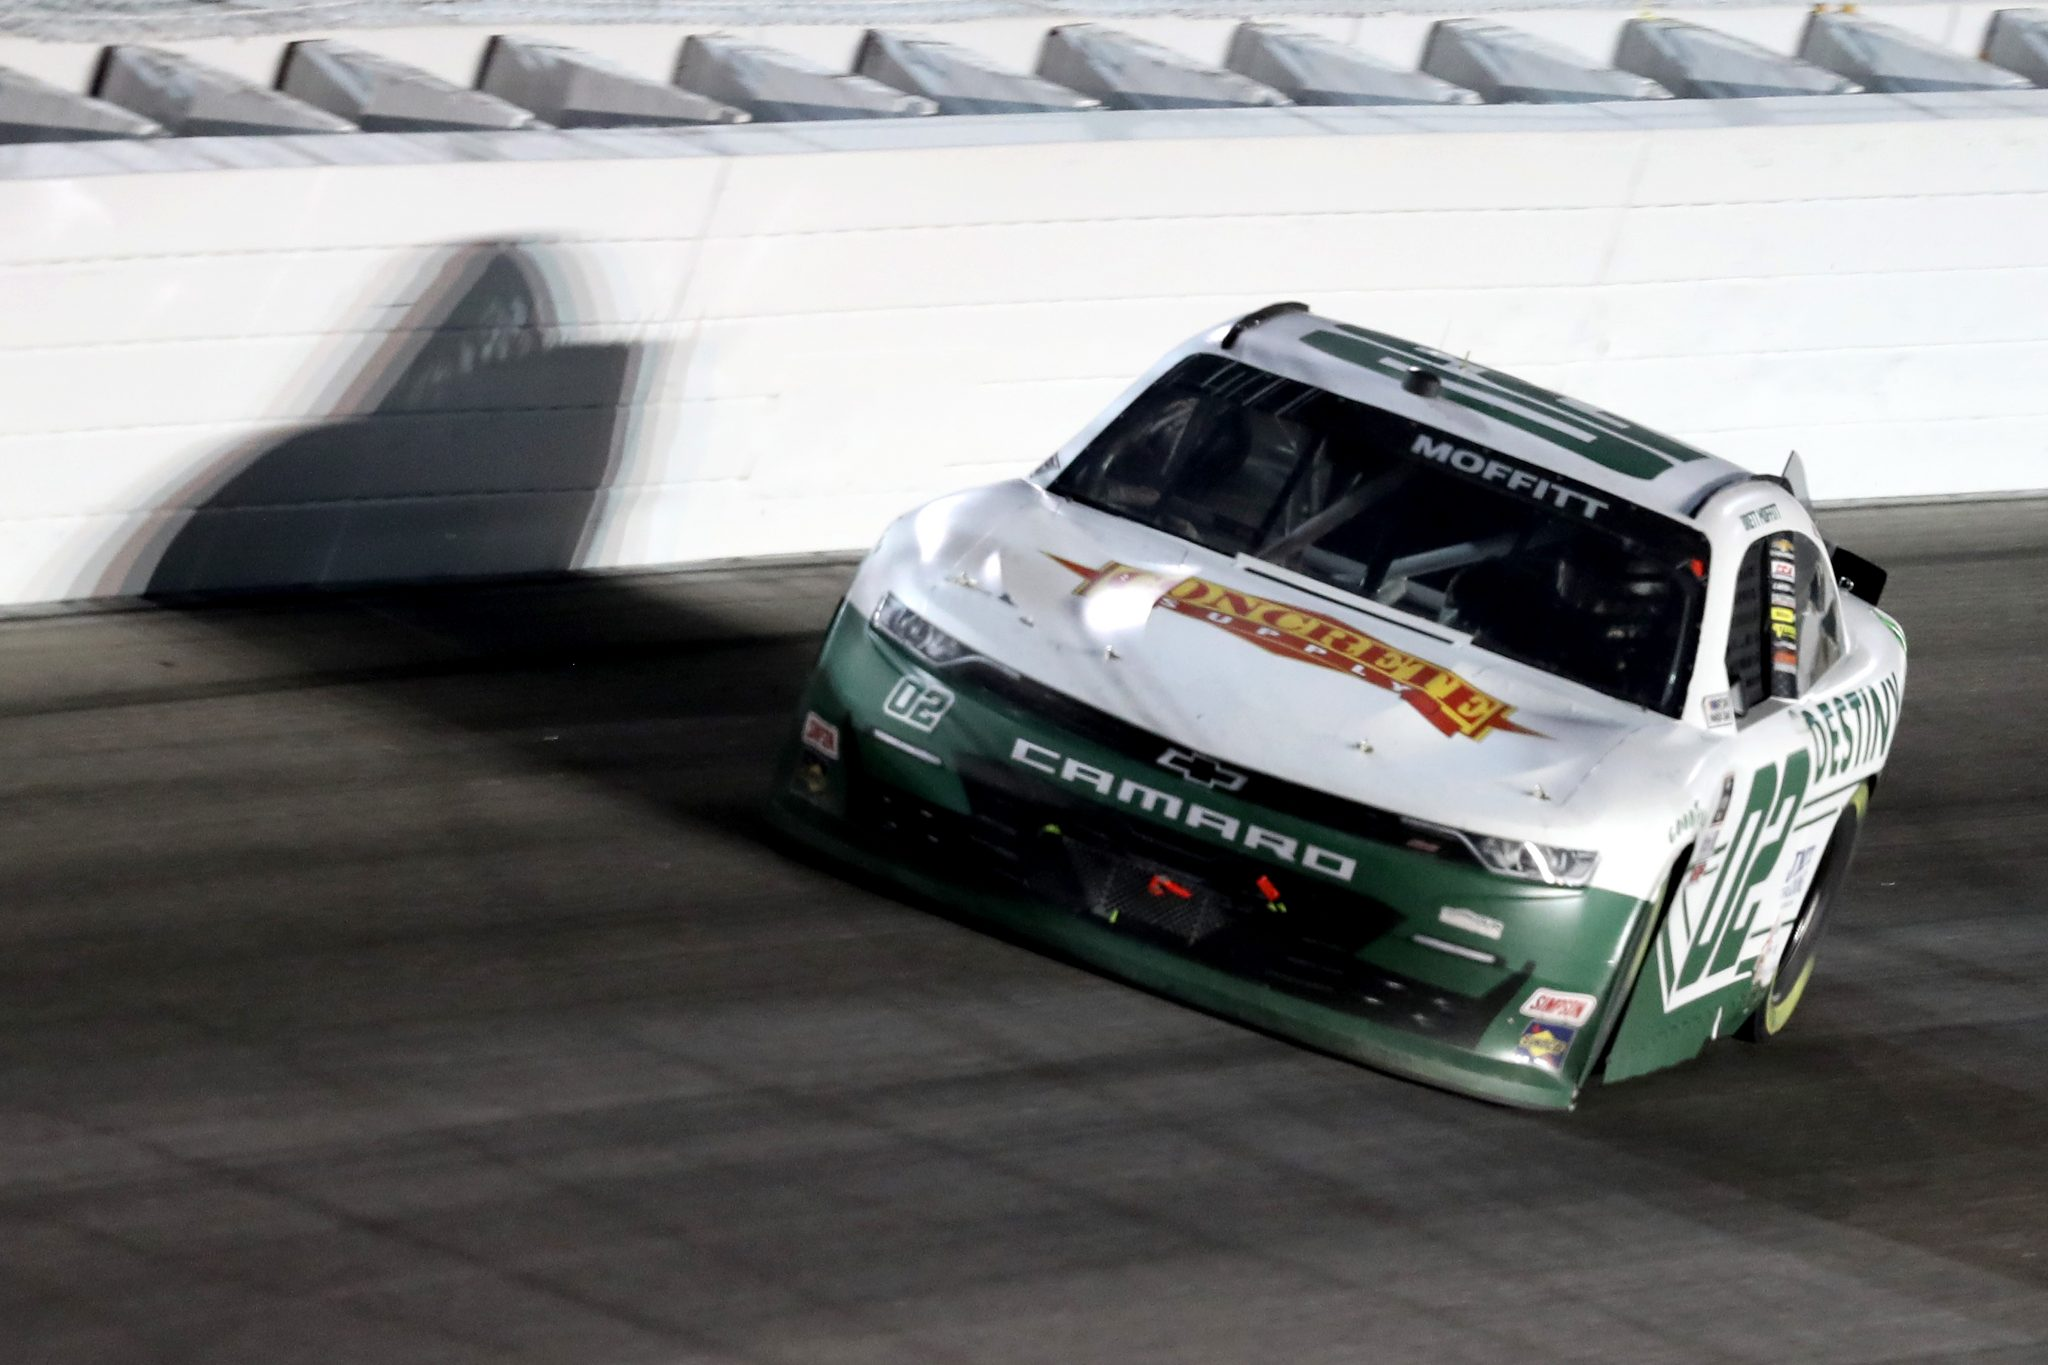 KANSAS CITY, KANSAS - OCTOBER 17: Brett Moffitt, driver of the #02 Destiny Homes/Concrete Supply Chevrolet, drives during the NASCAR Xfinity Series Kansas Lottery 300 at Kansas Speedway on October 17, 2020 in Kansas City, Kansas. (Photo by Jamie Squire/Getty Images) | Getty Images